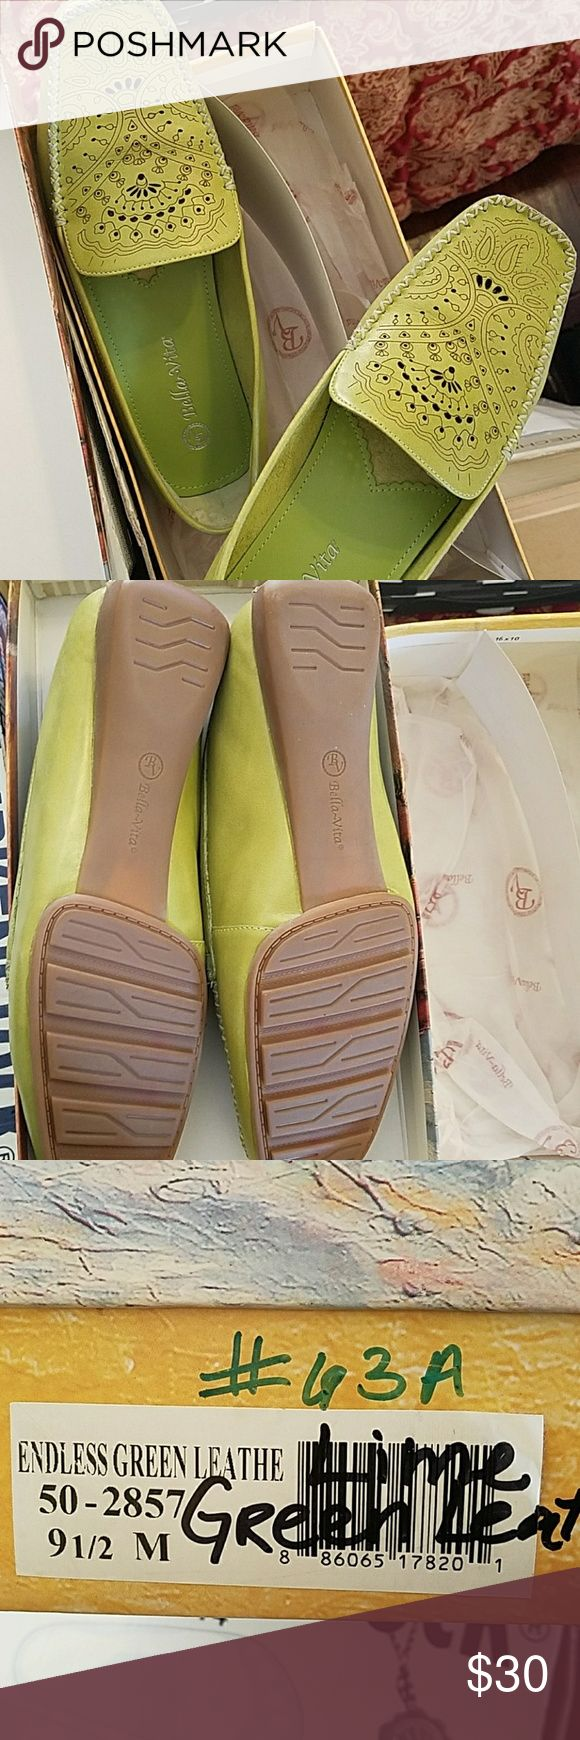 Bella Vita Green Leather Loafers Green leather loafers by Bella Vita, great condition Bella Vita Shoes Flats & Loafers